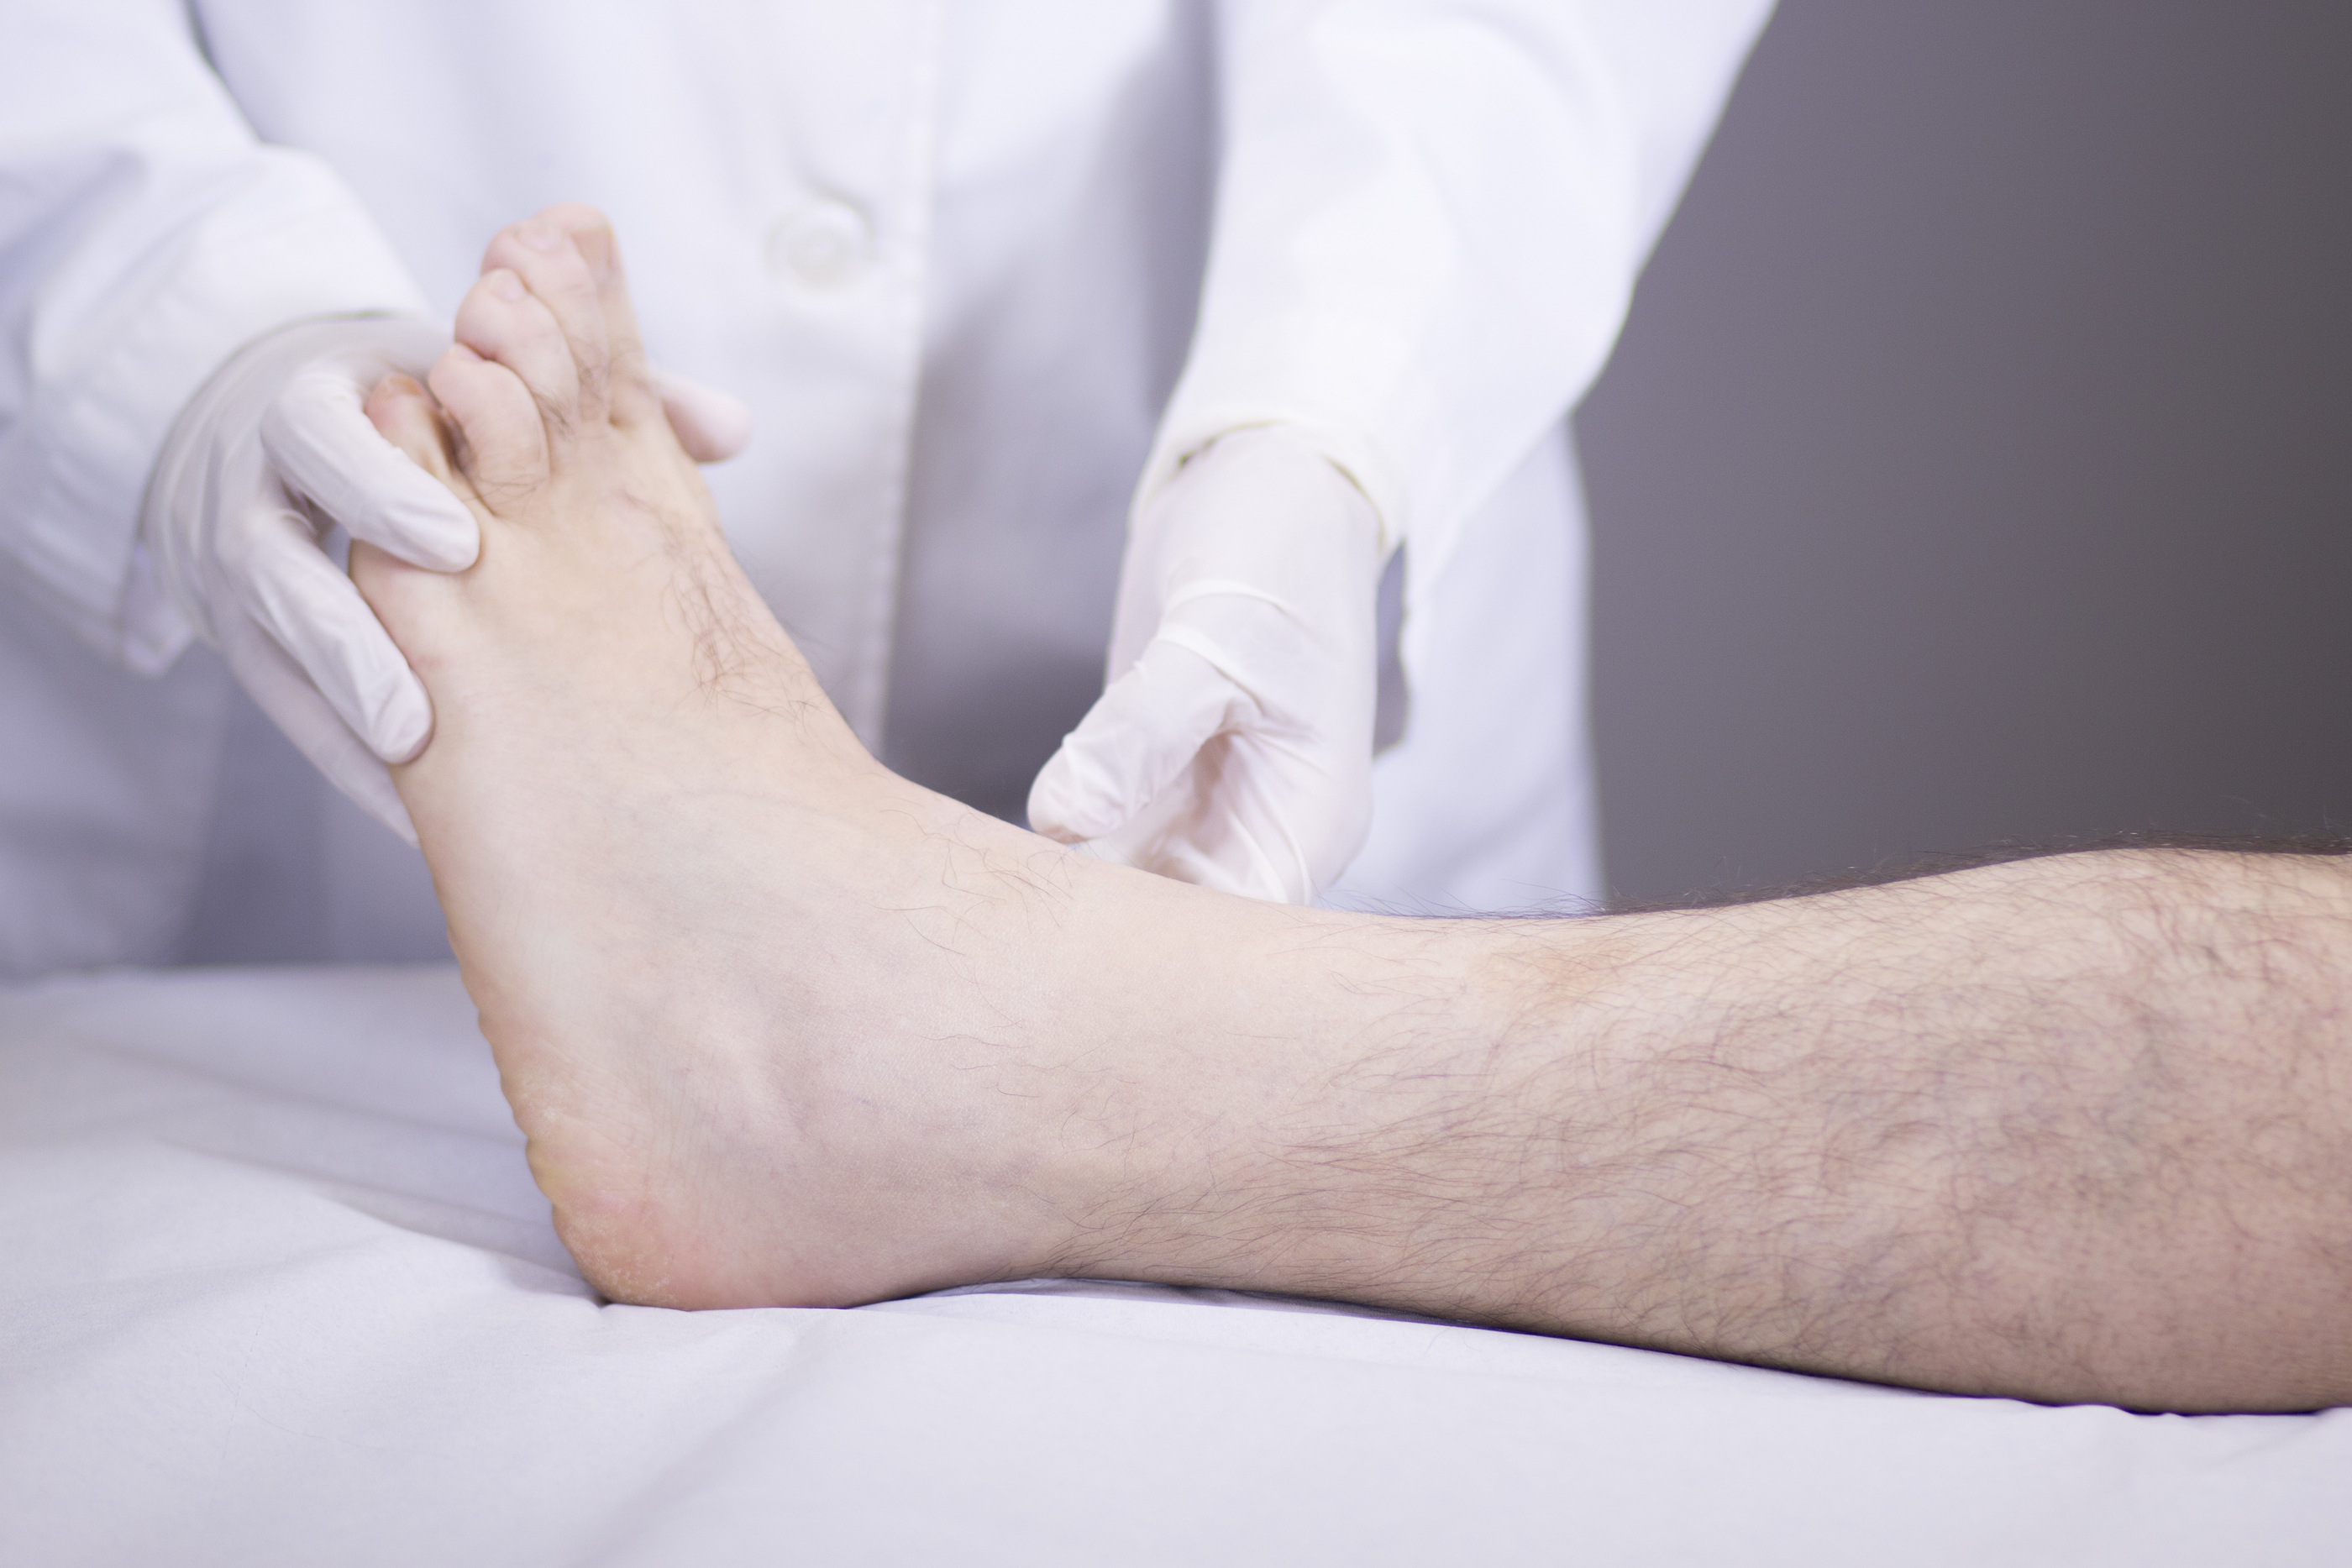 Traumatology and orthopedics surgeon in doctor and patient orthopedic medical examination consultation of foot ankle and toes in hospital clinic. ** Note: Shallow depth of field